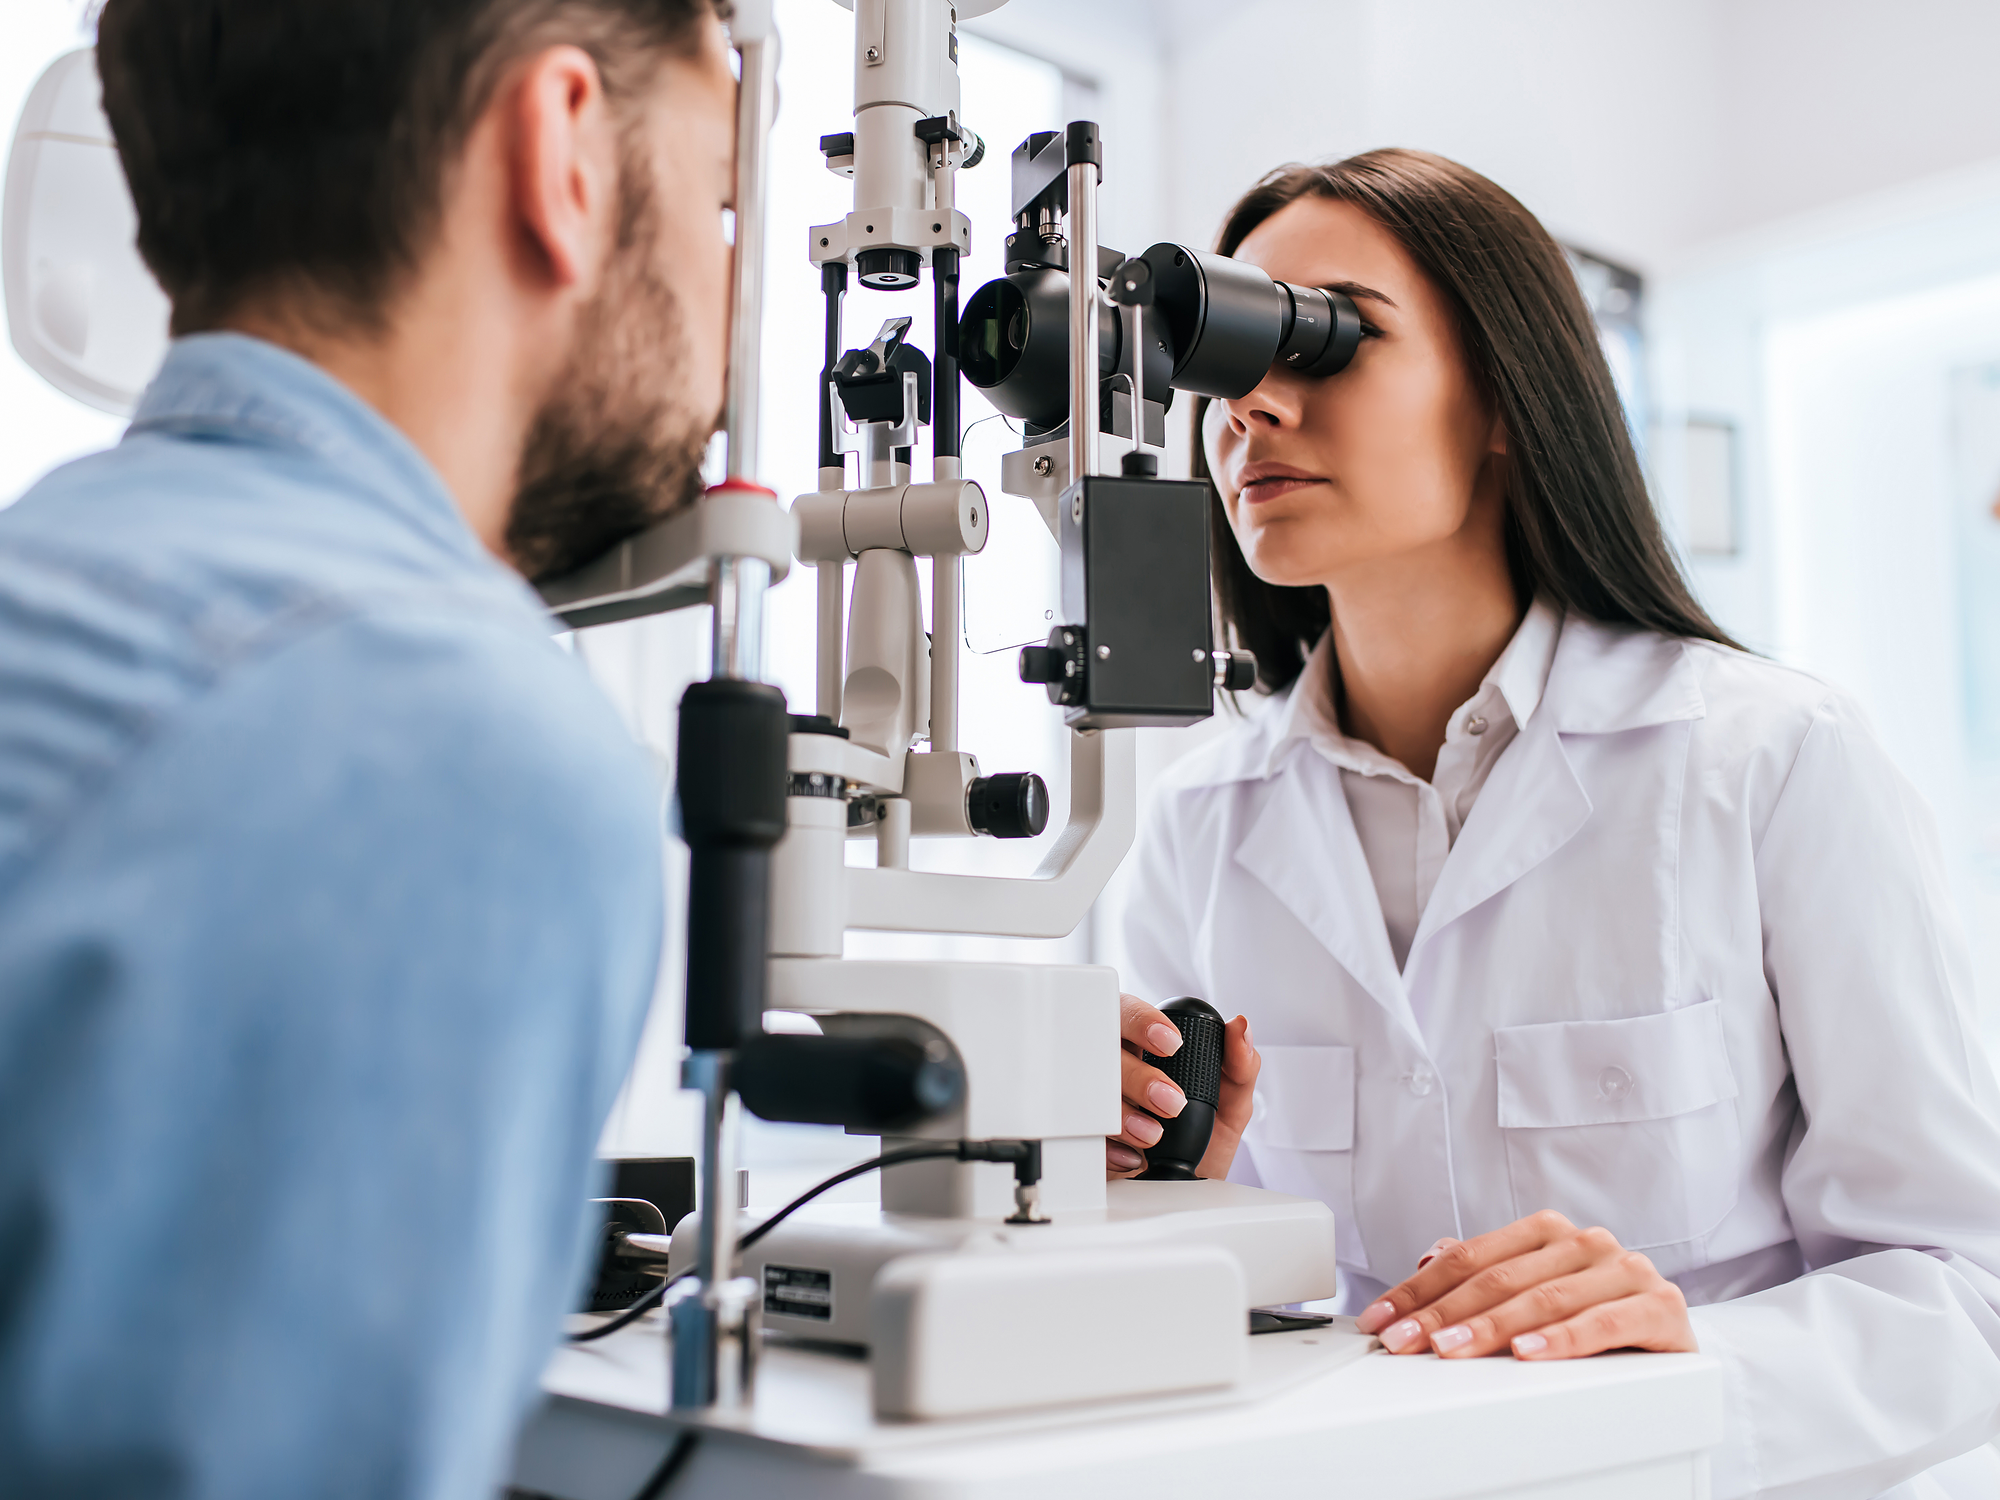 Eye Exams Can Uncover Early Warning Signs for Health Problems